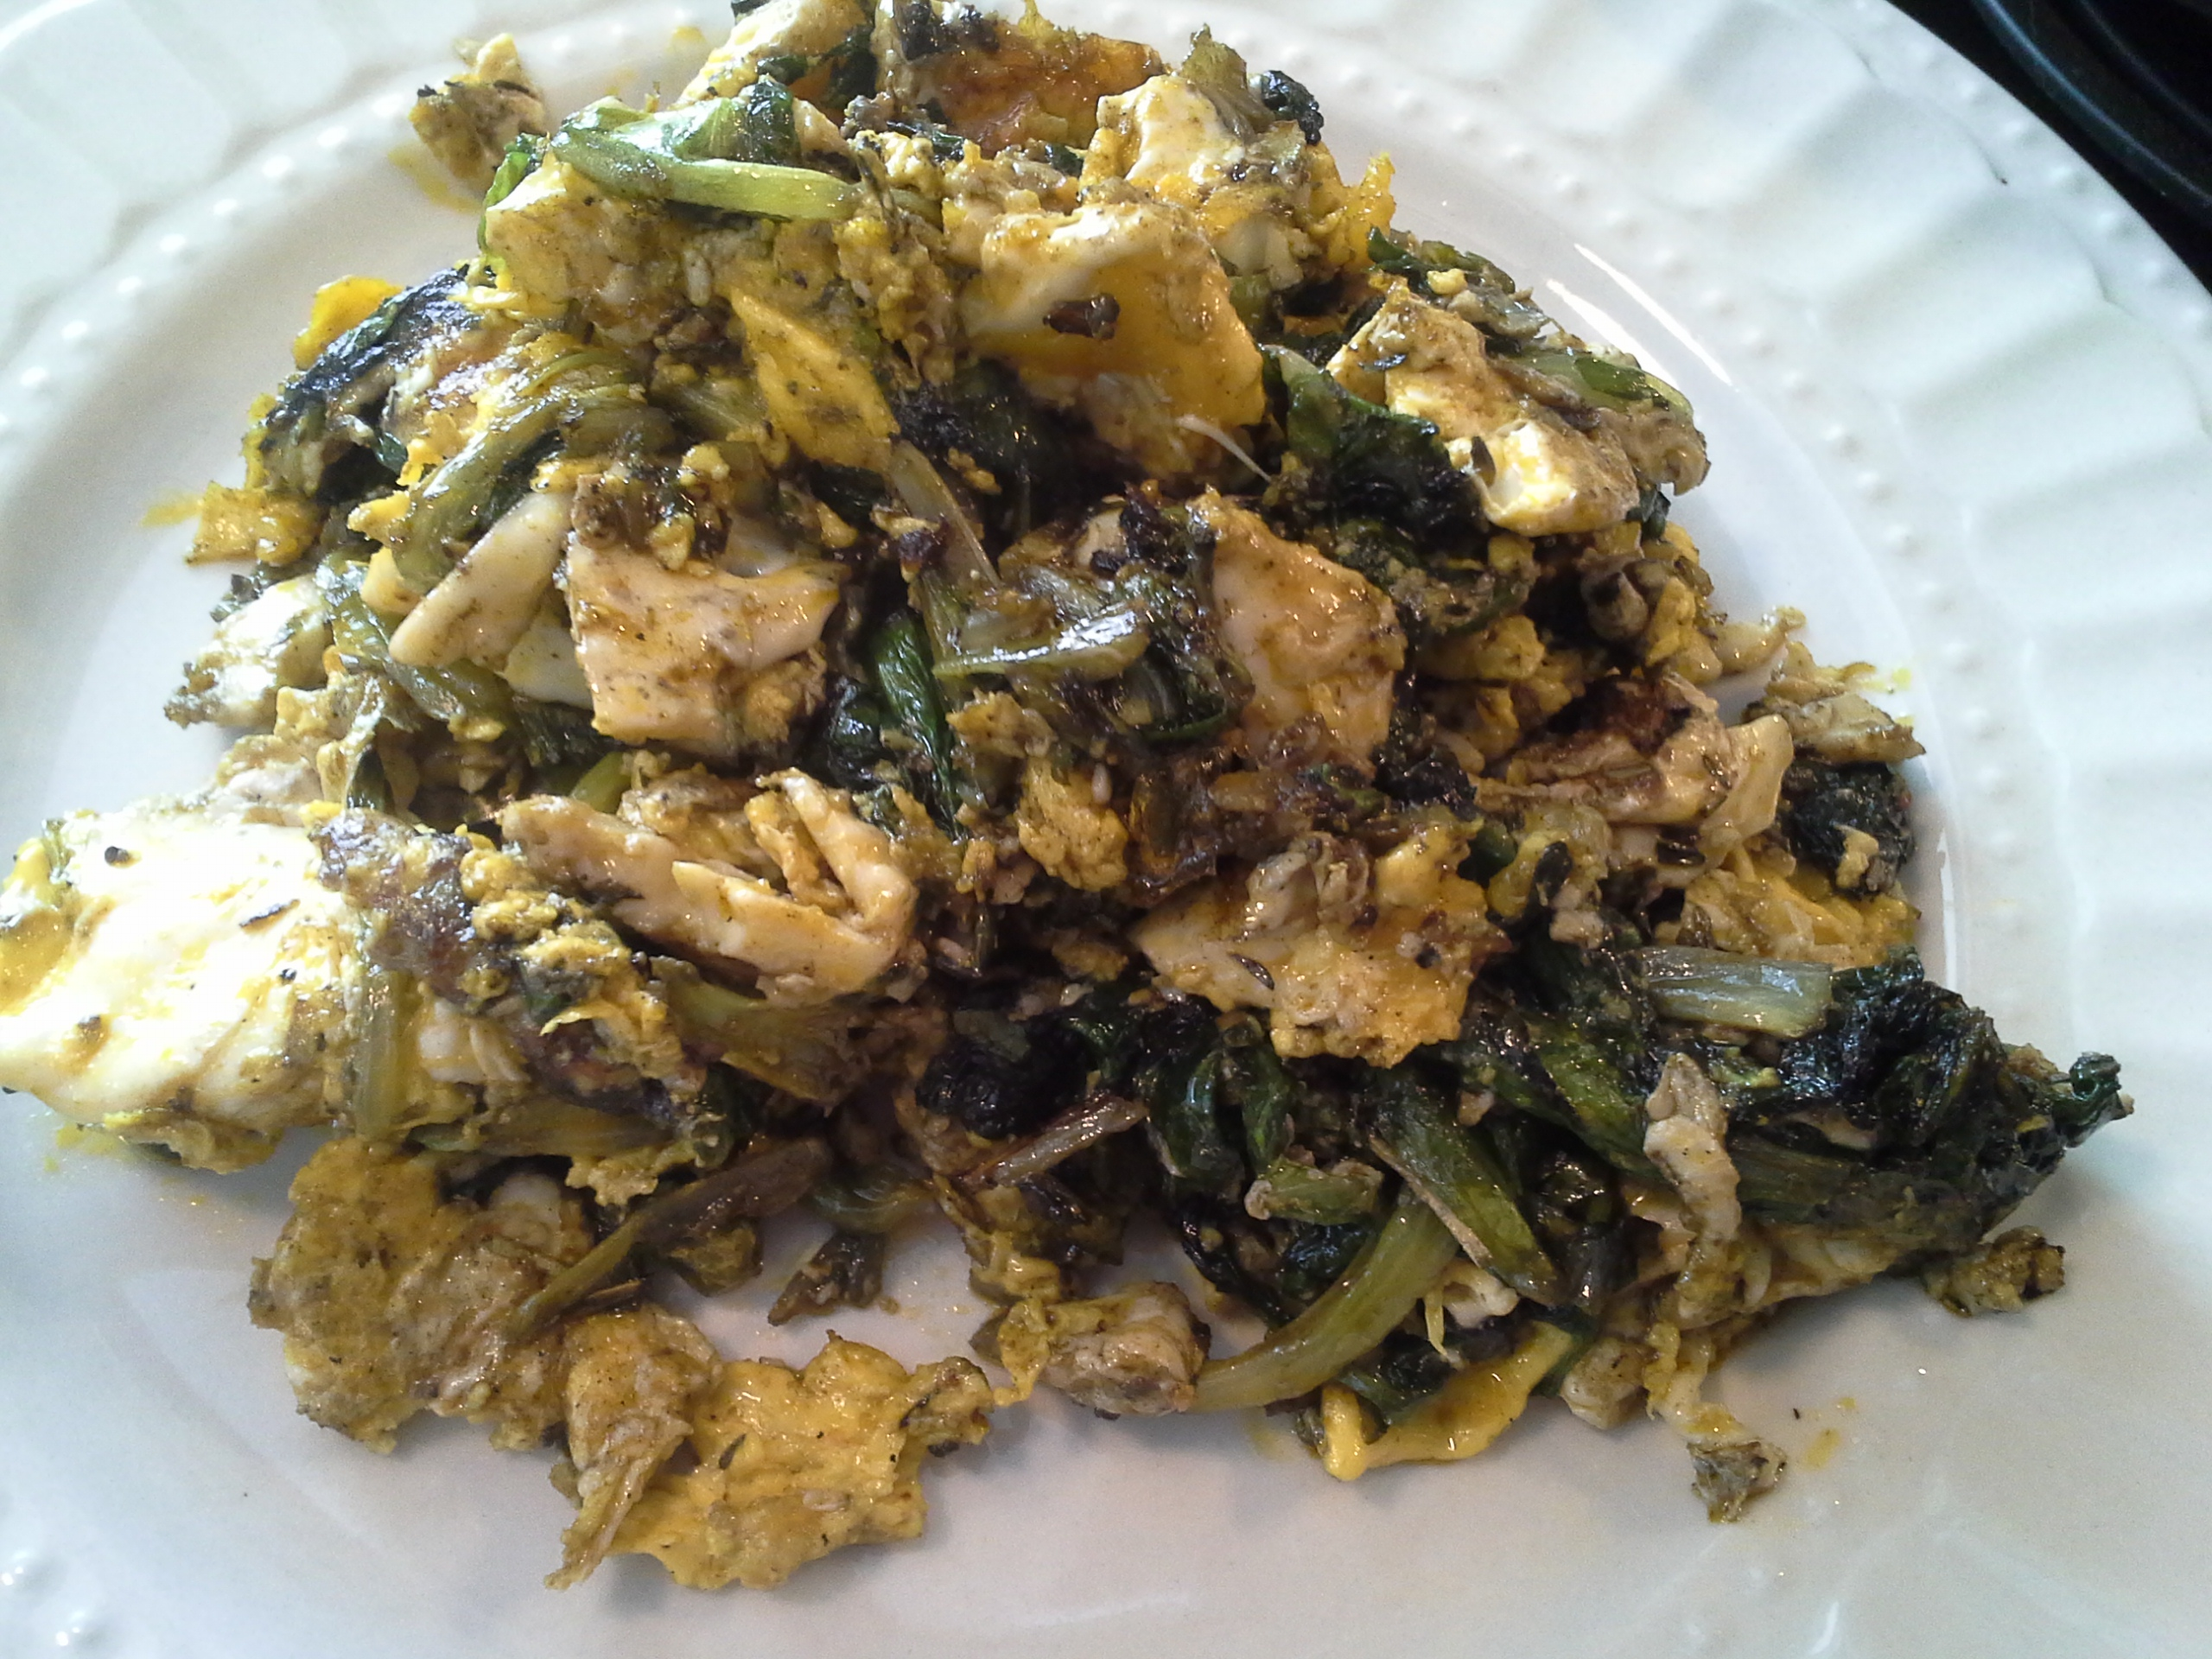 Breakfast: 11:45 a.m. | 4 eggs, lettuce, 2 Tbsp. red palm oil, herbs & spices